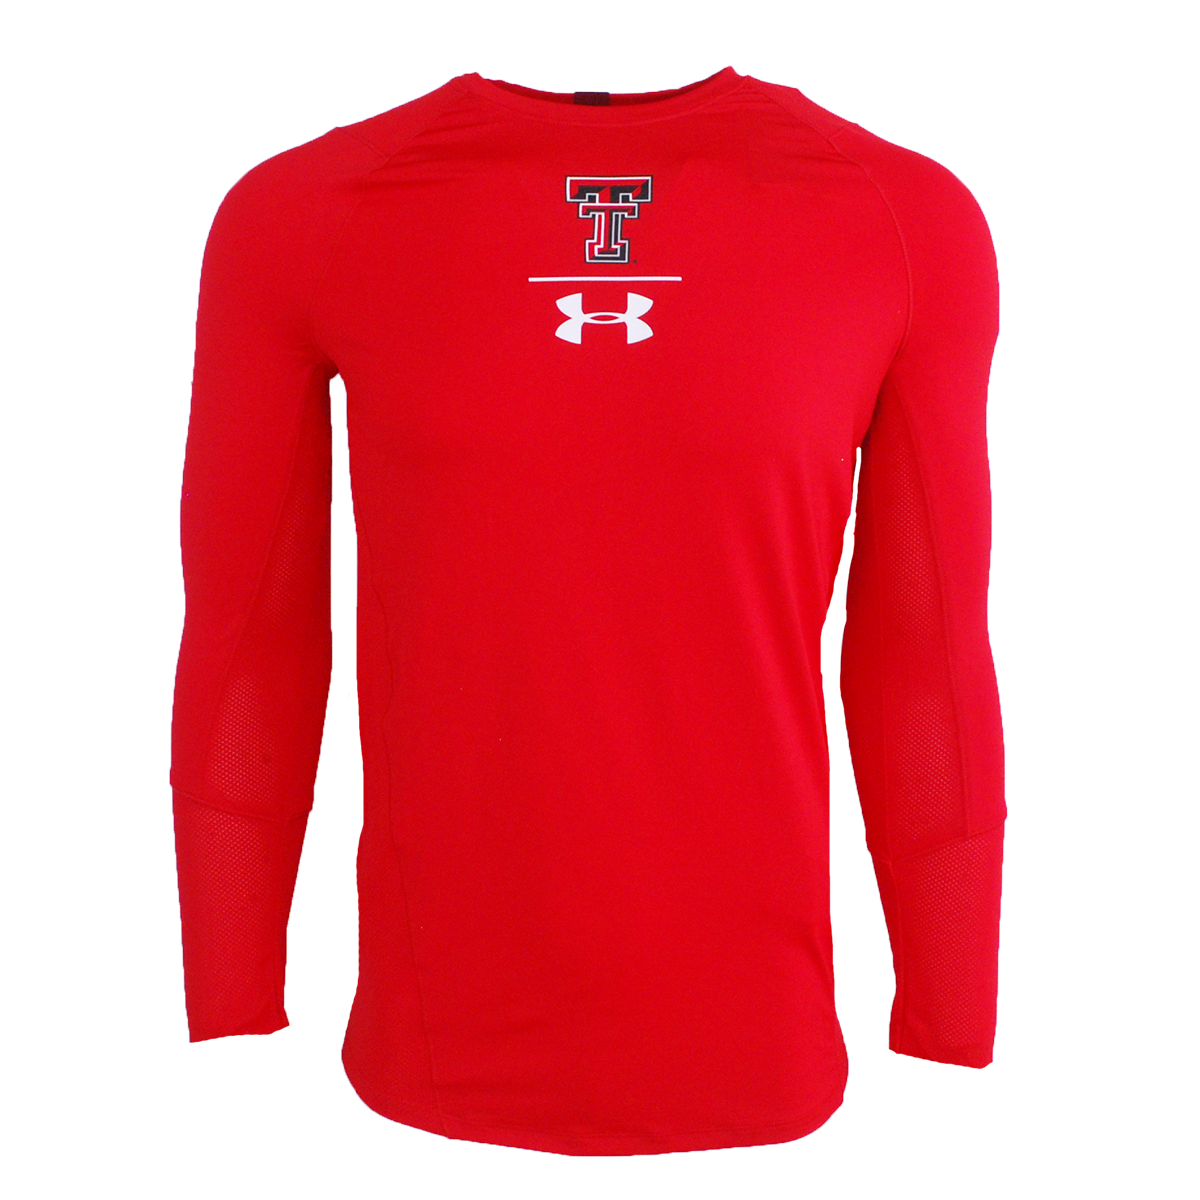 3508e4758 Under Armour SMU Long Sleeve Training Tee - The Matador